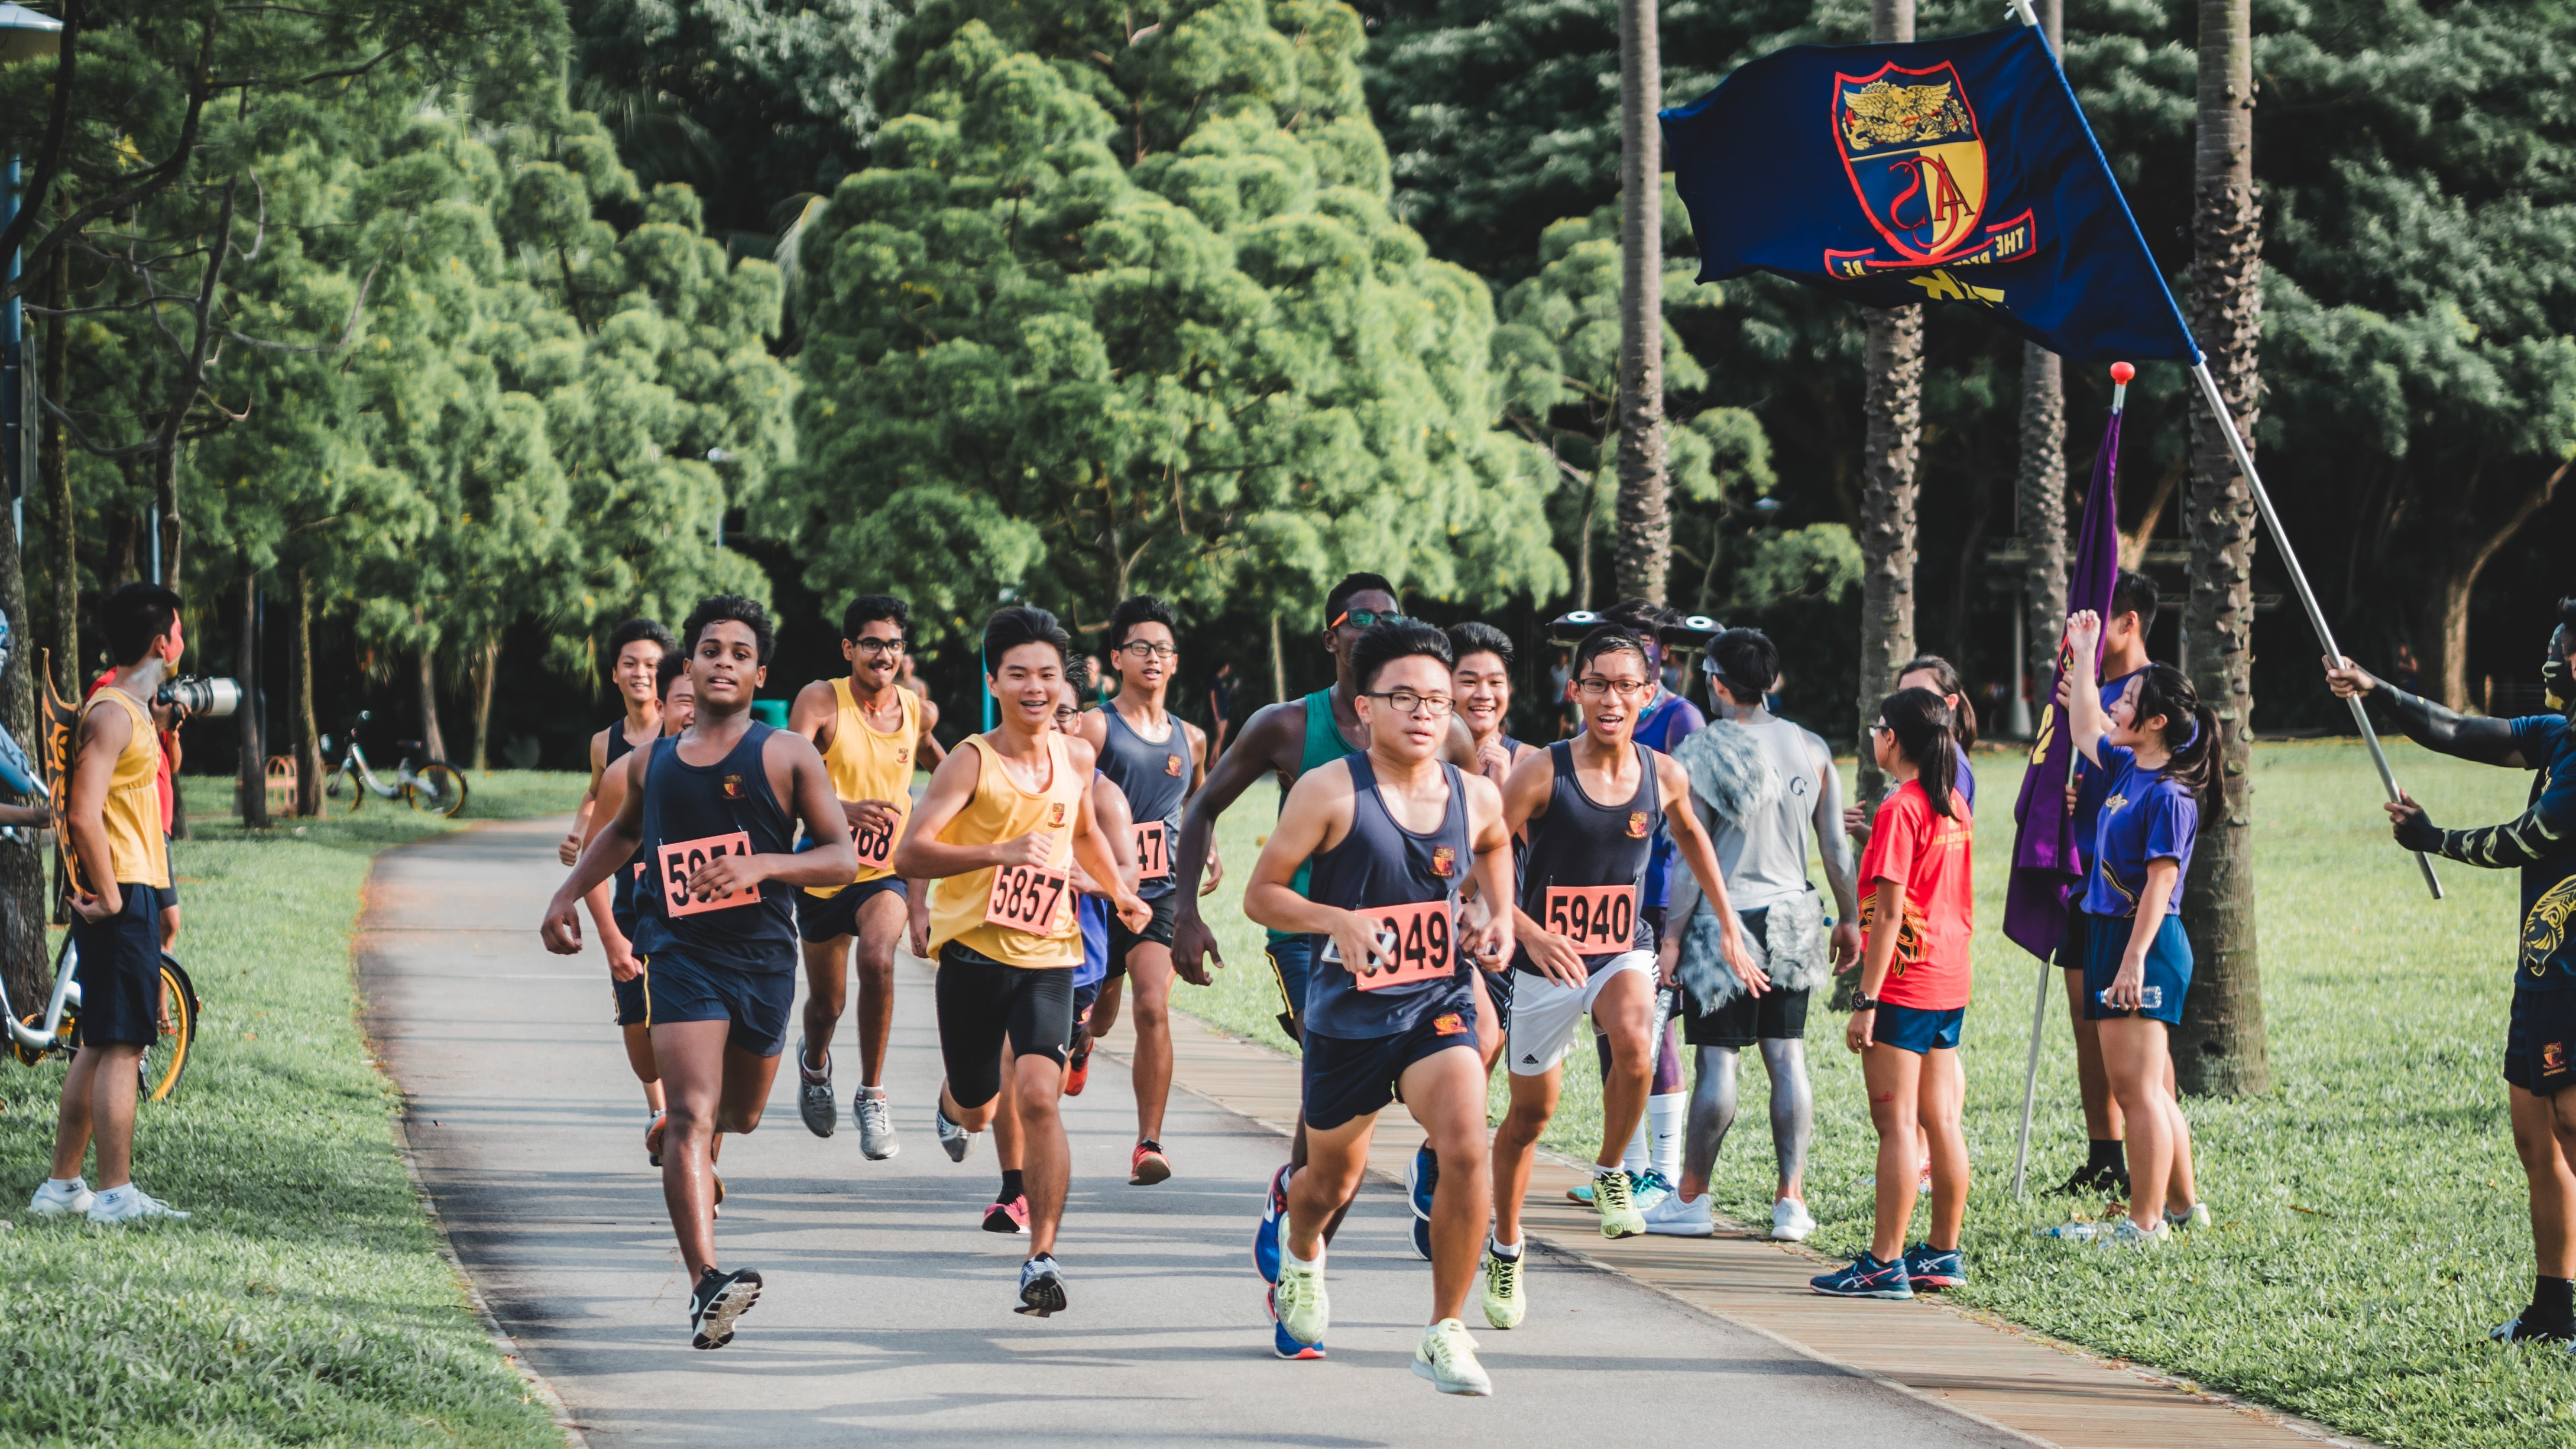 group of men running on pathway